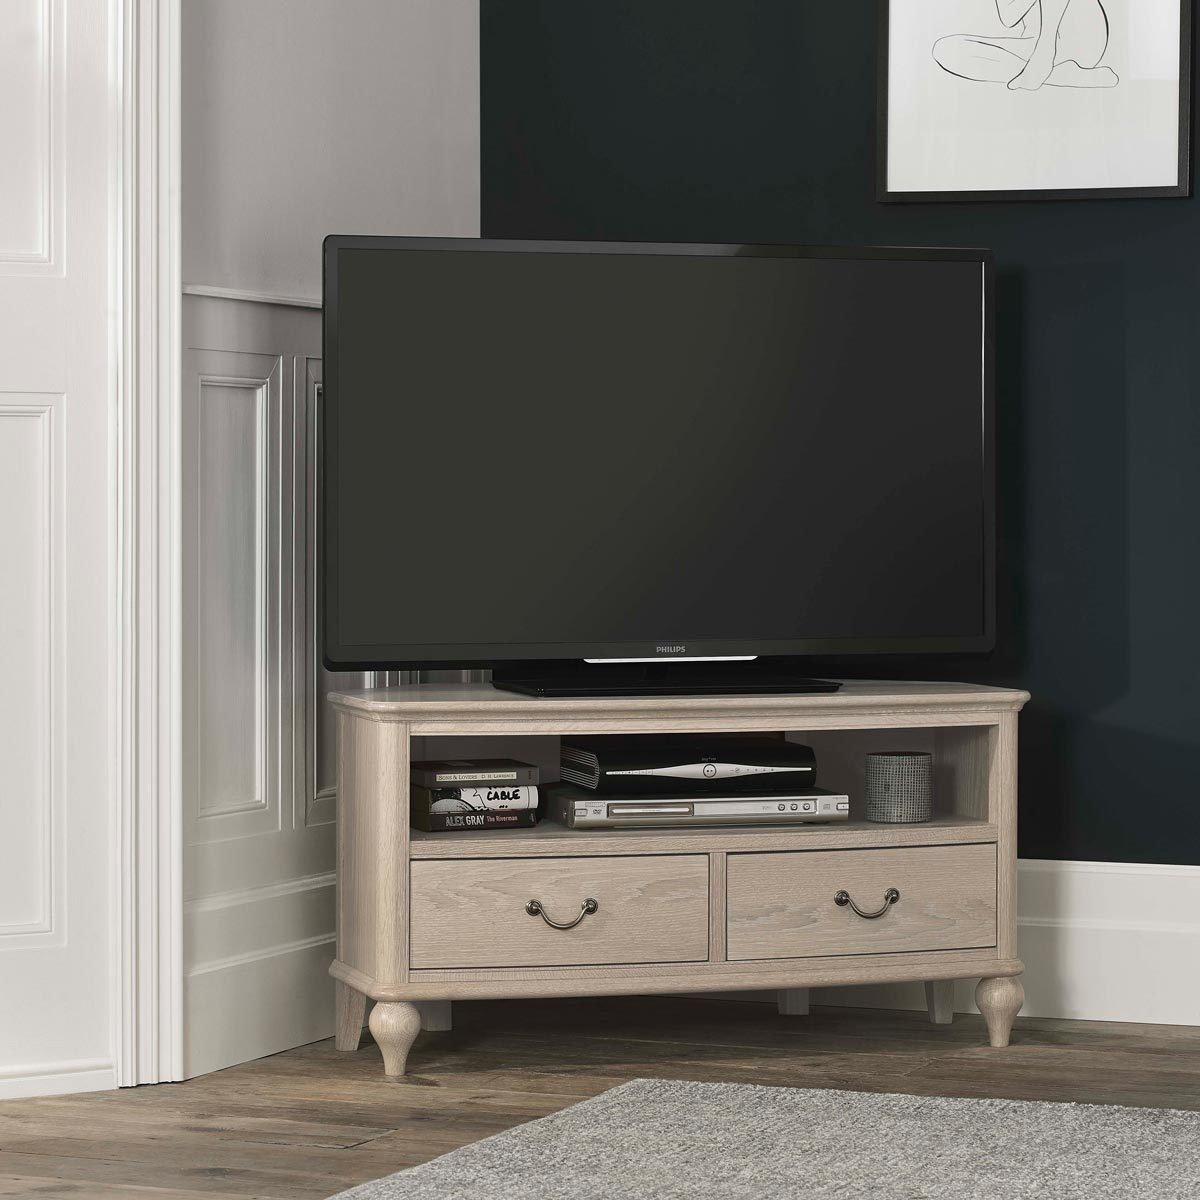 Bentley Designs Margaux Chalk Oak Corner Tv Cabinet For Tvs Up To 50 Costco Uk